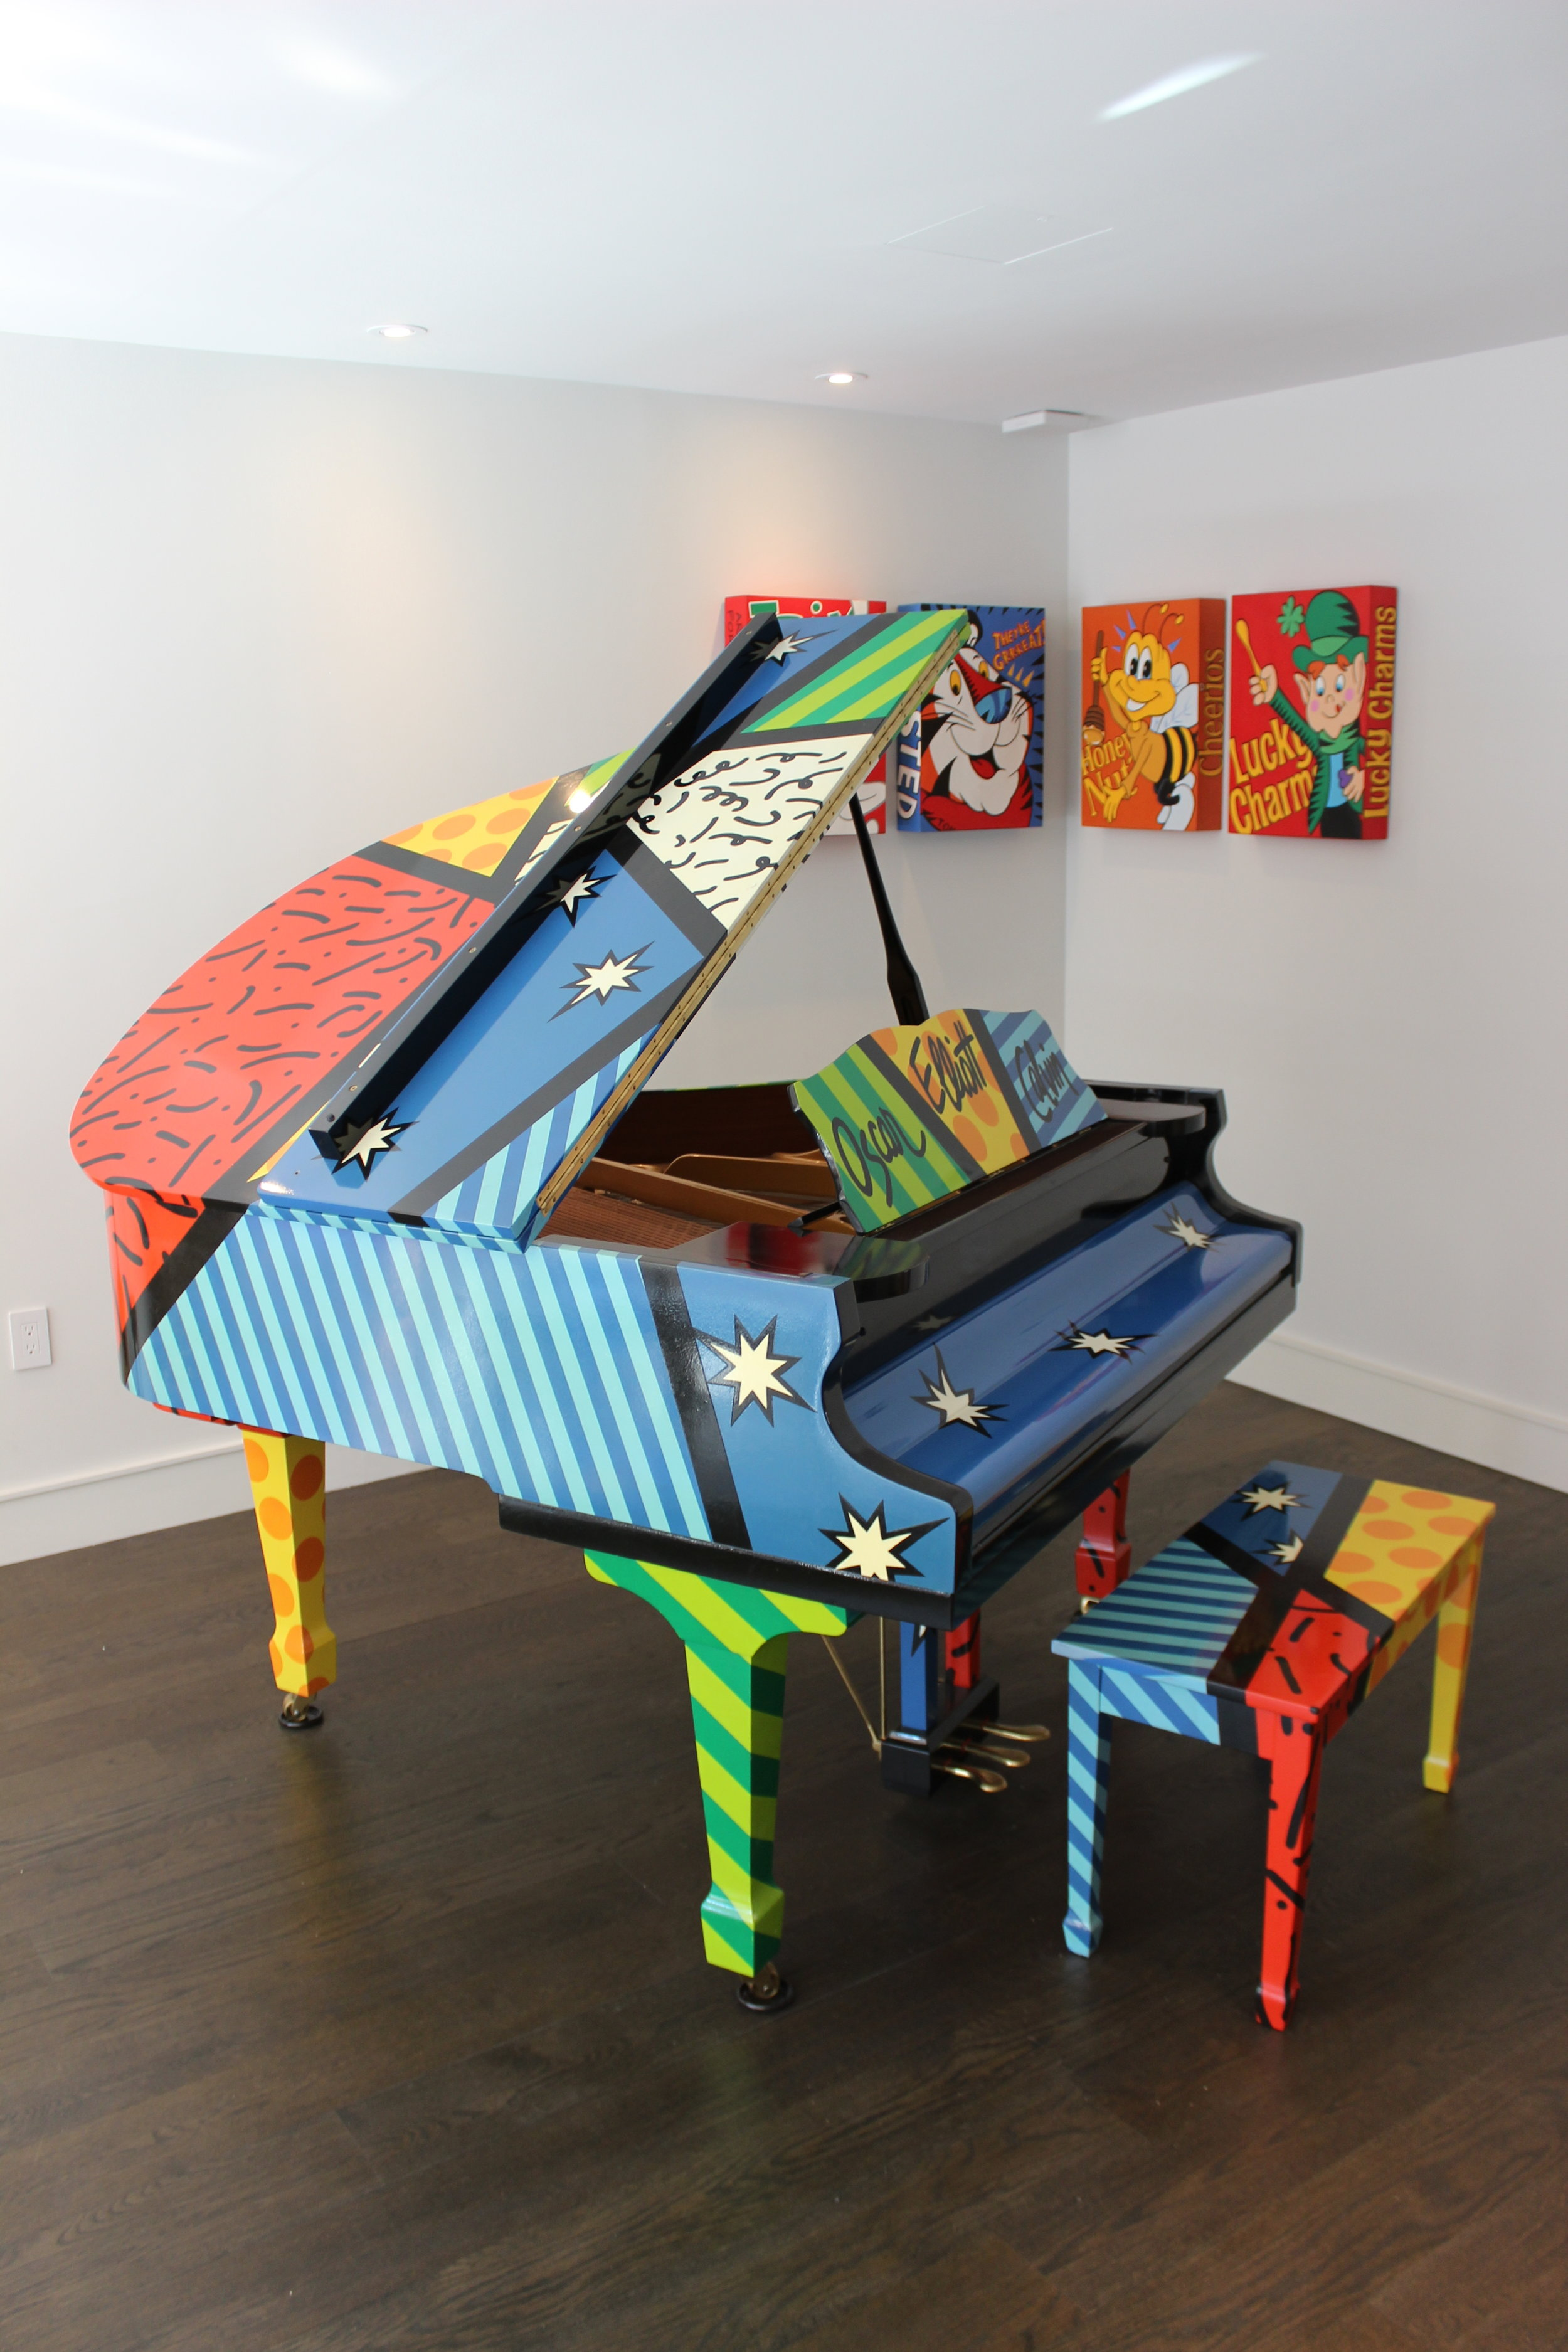 """ Listening is key in creating! People will tell you what they want, you just have to listen"" This piano and artworks are a product of a sit down meeting with a 4,6,10 yr old."